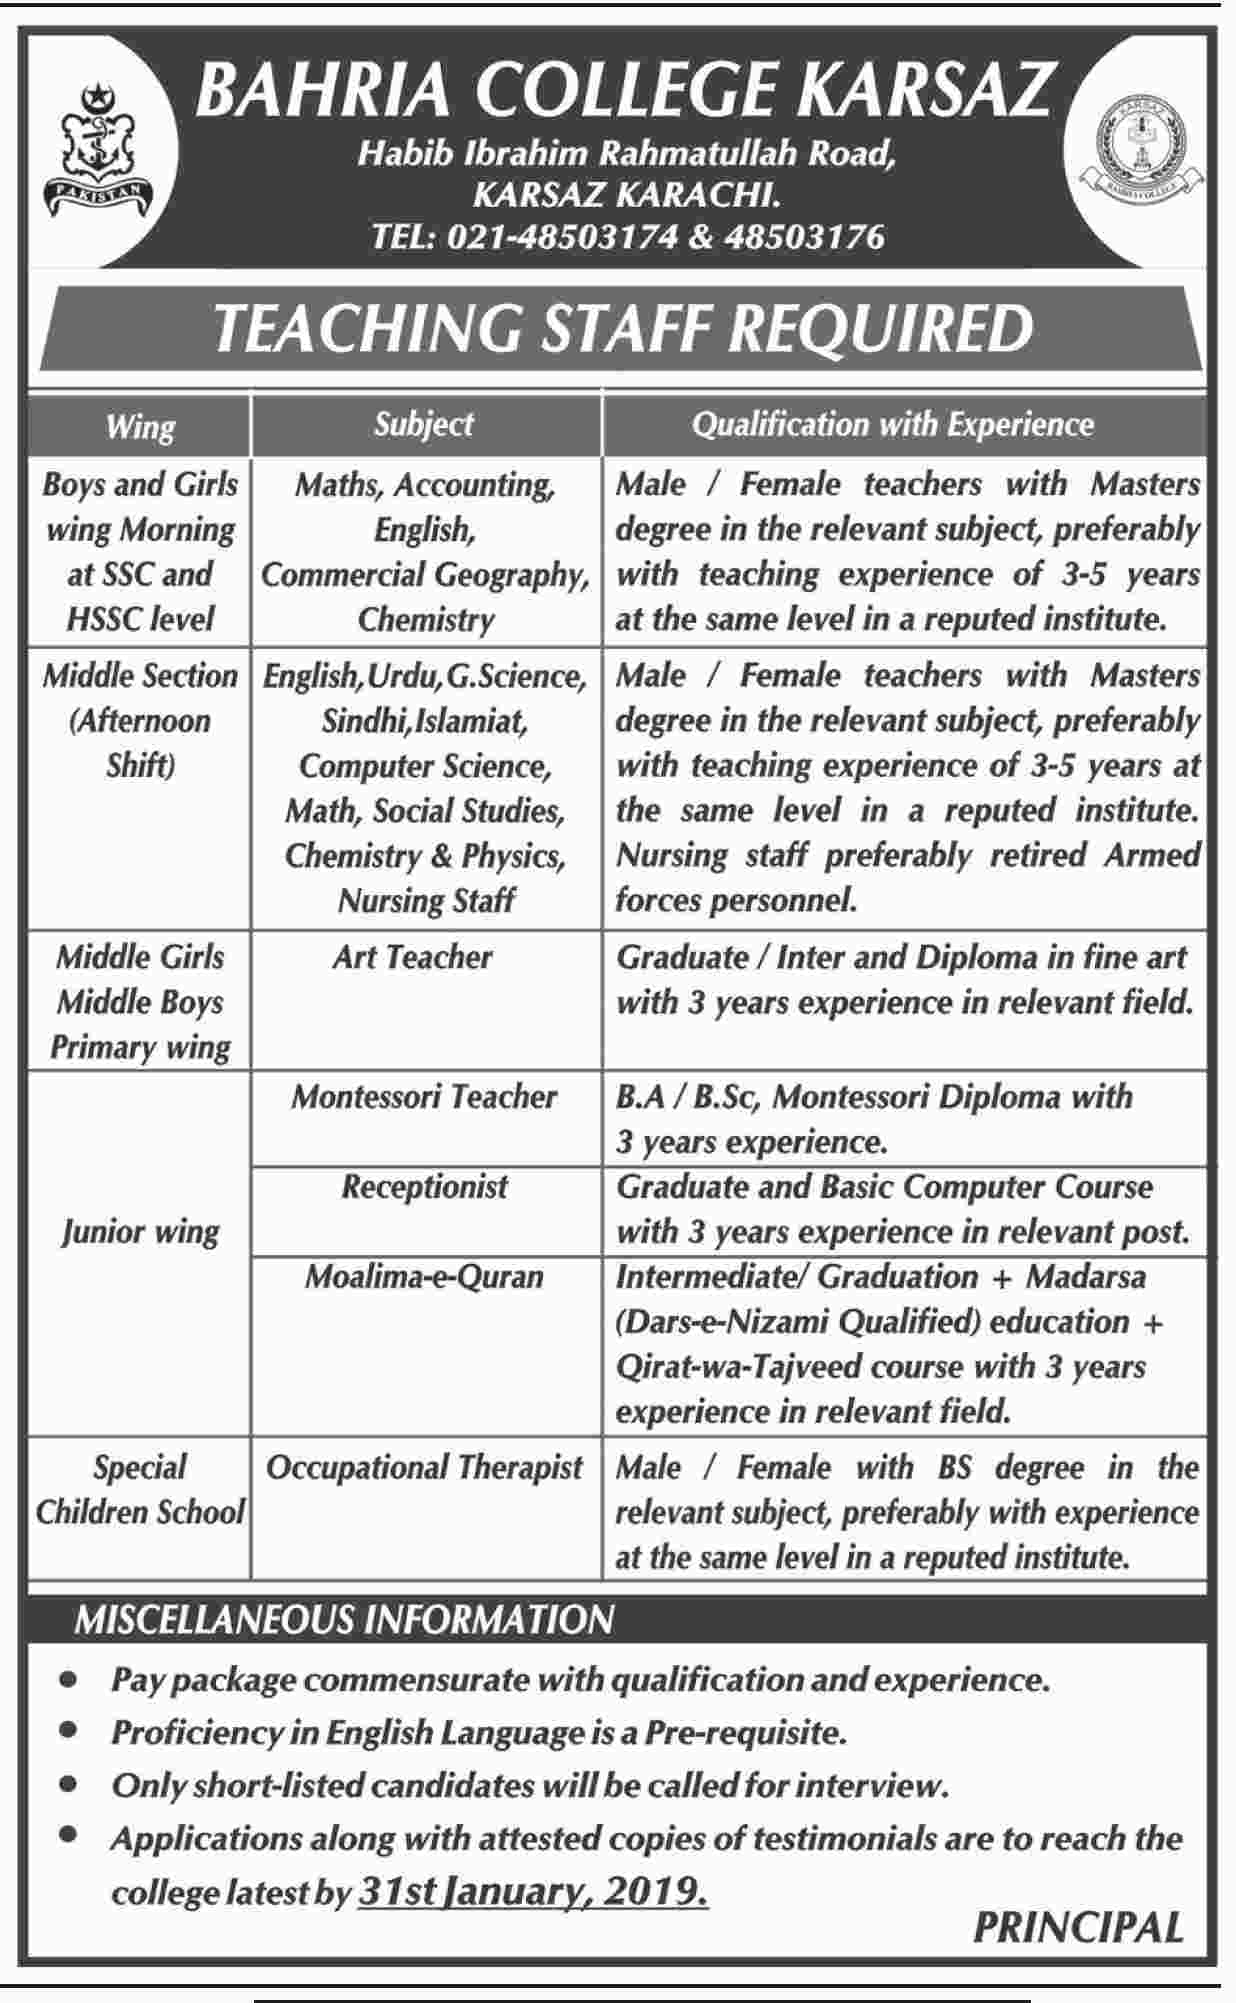 Bahria College Karsaz Teaching Staff Jobs 2019 Job